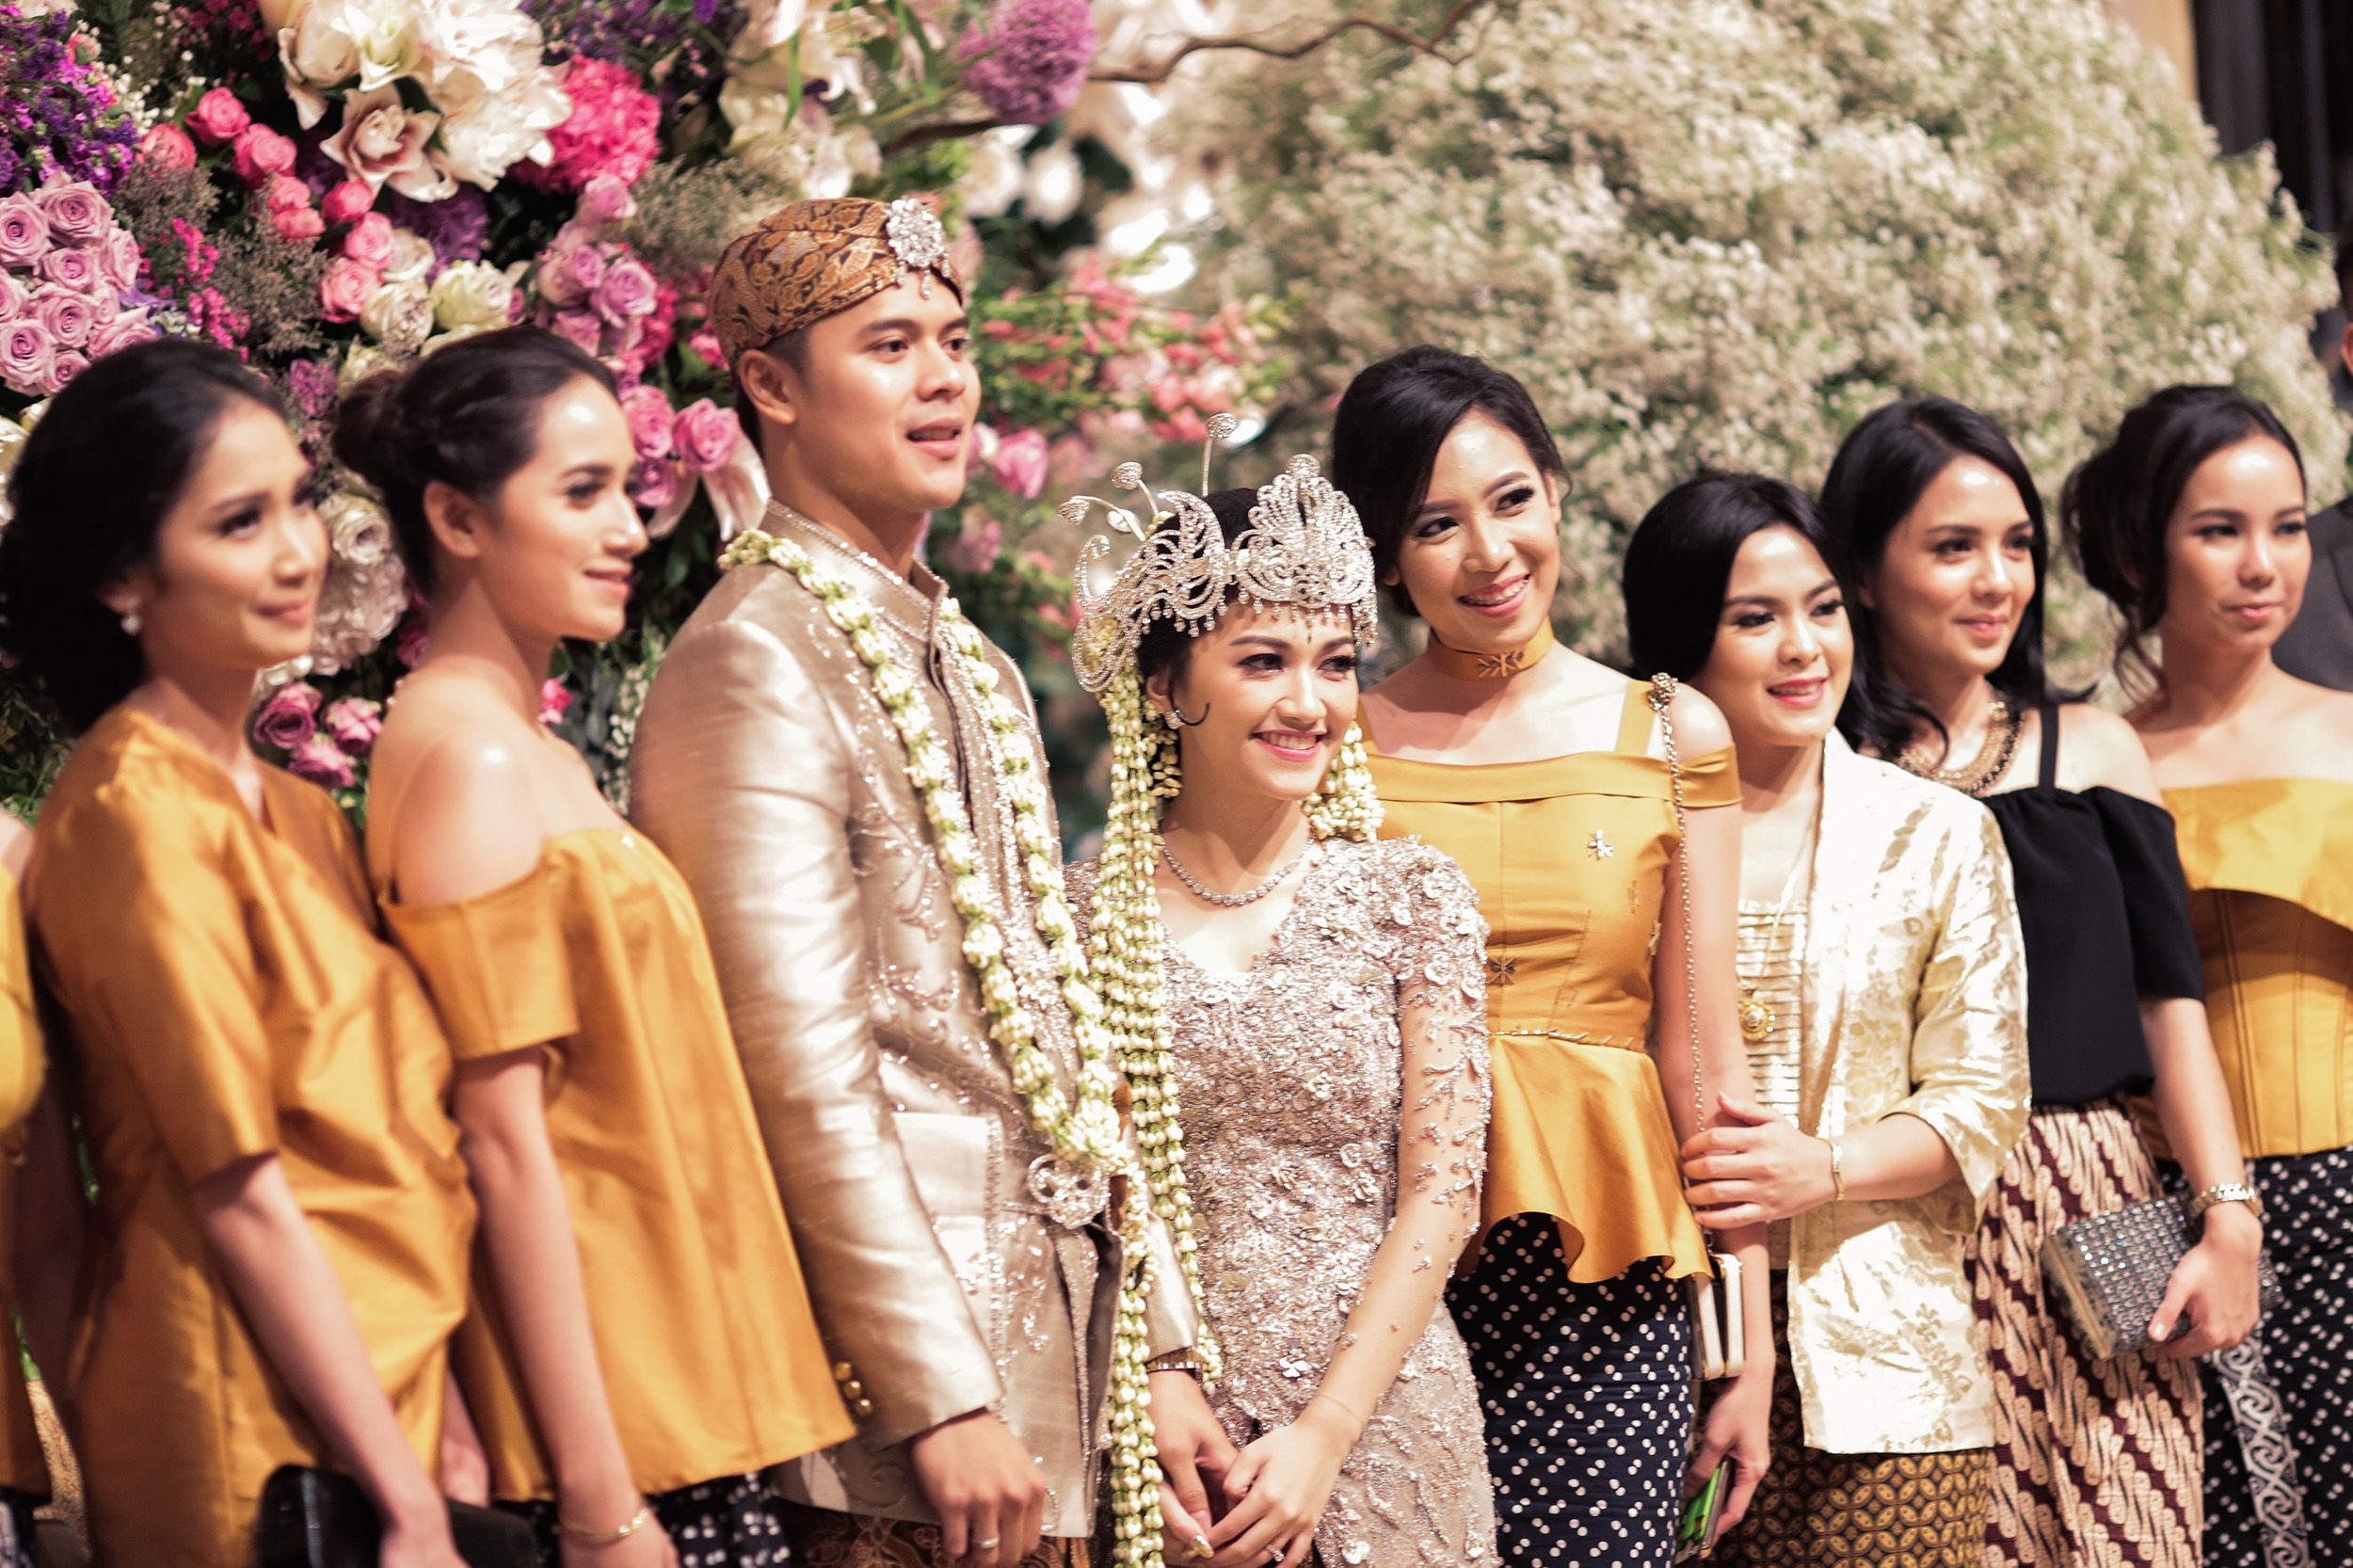 10 Gorgeous Traditional Attire Ideas for Your Bridesmaids Image 8